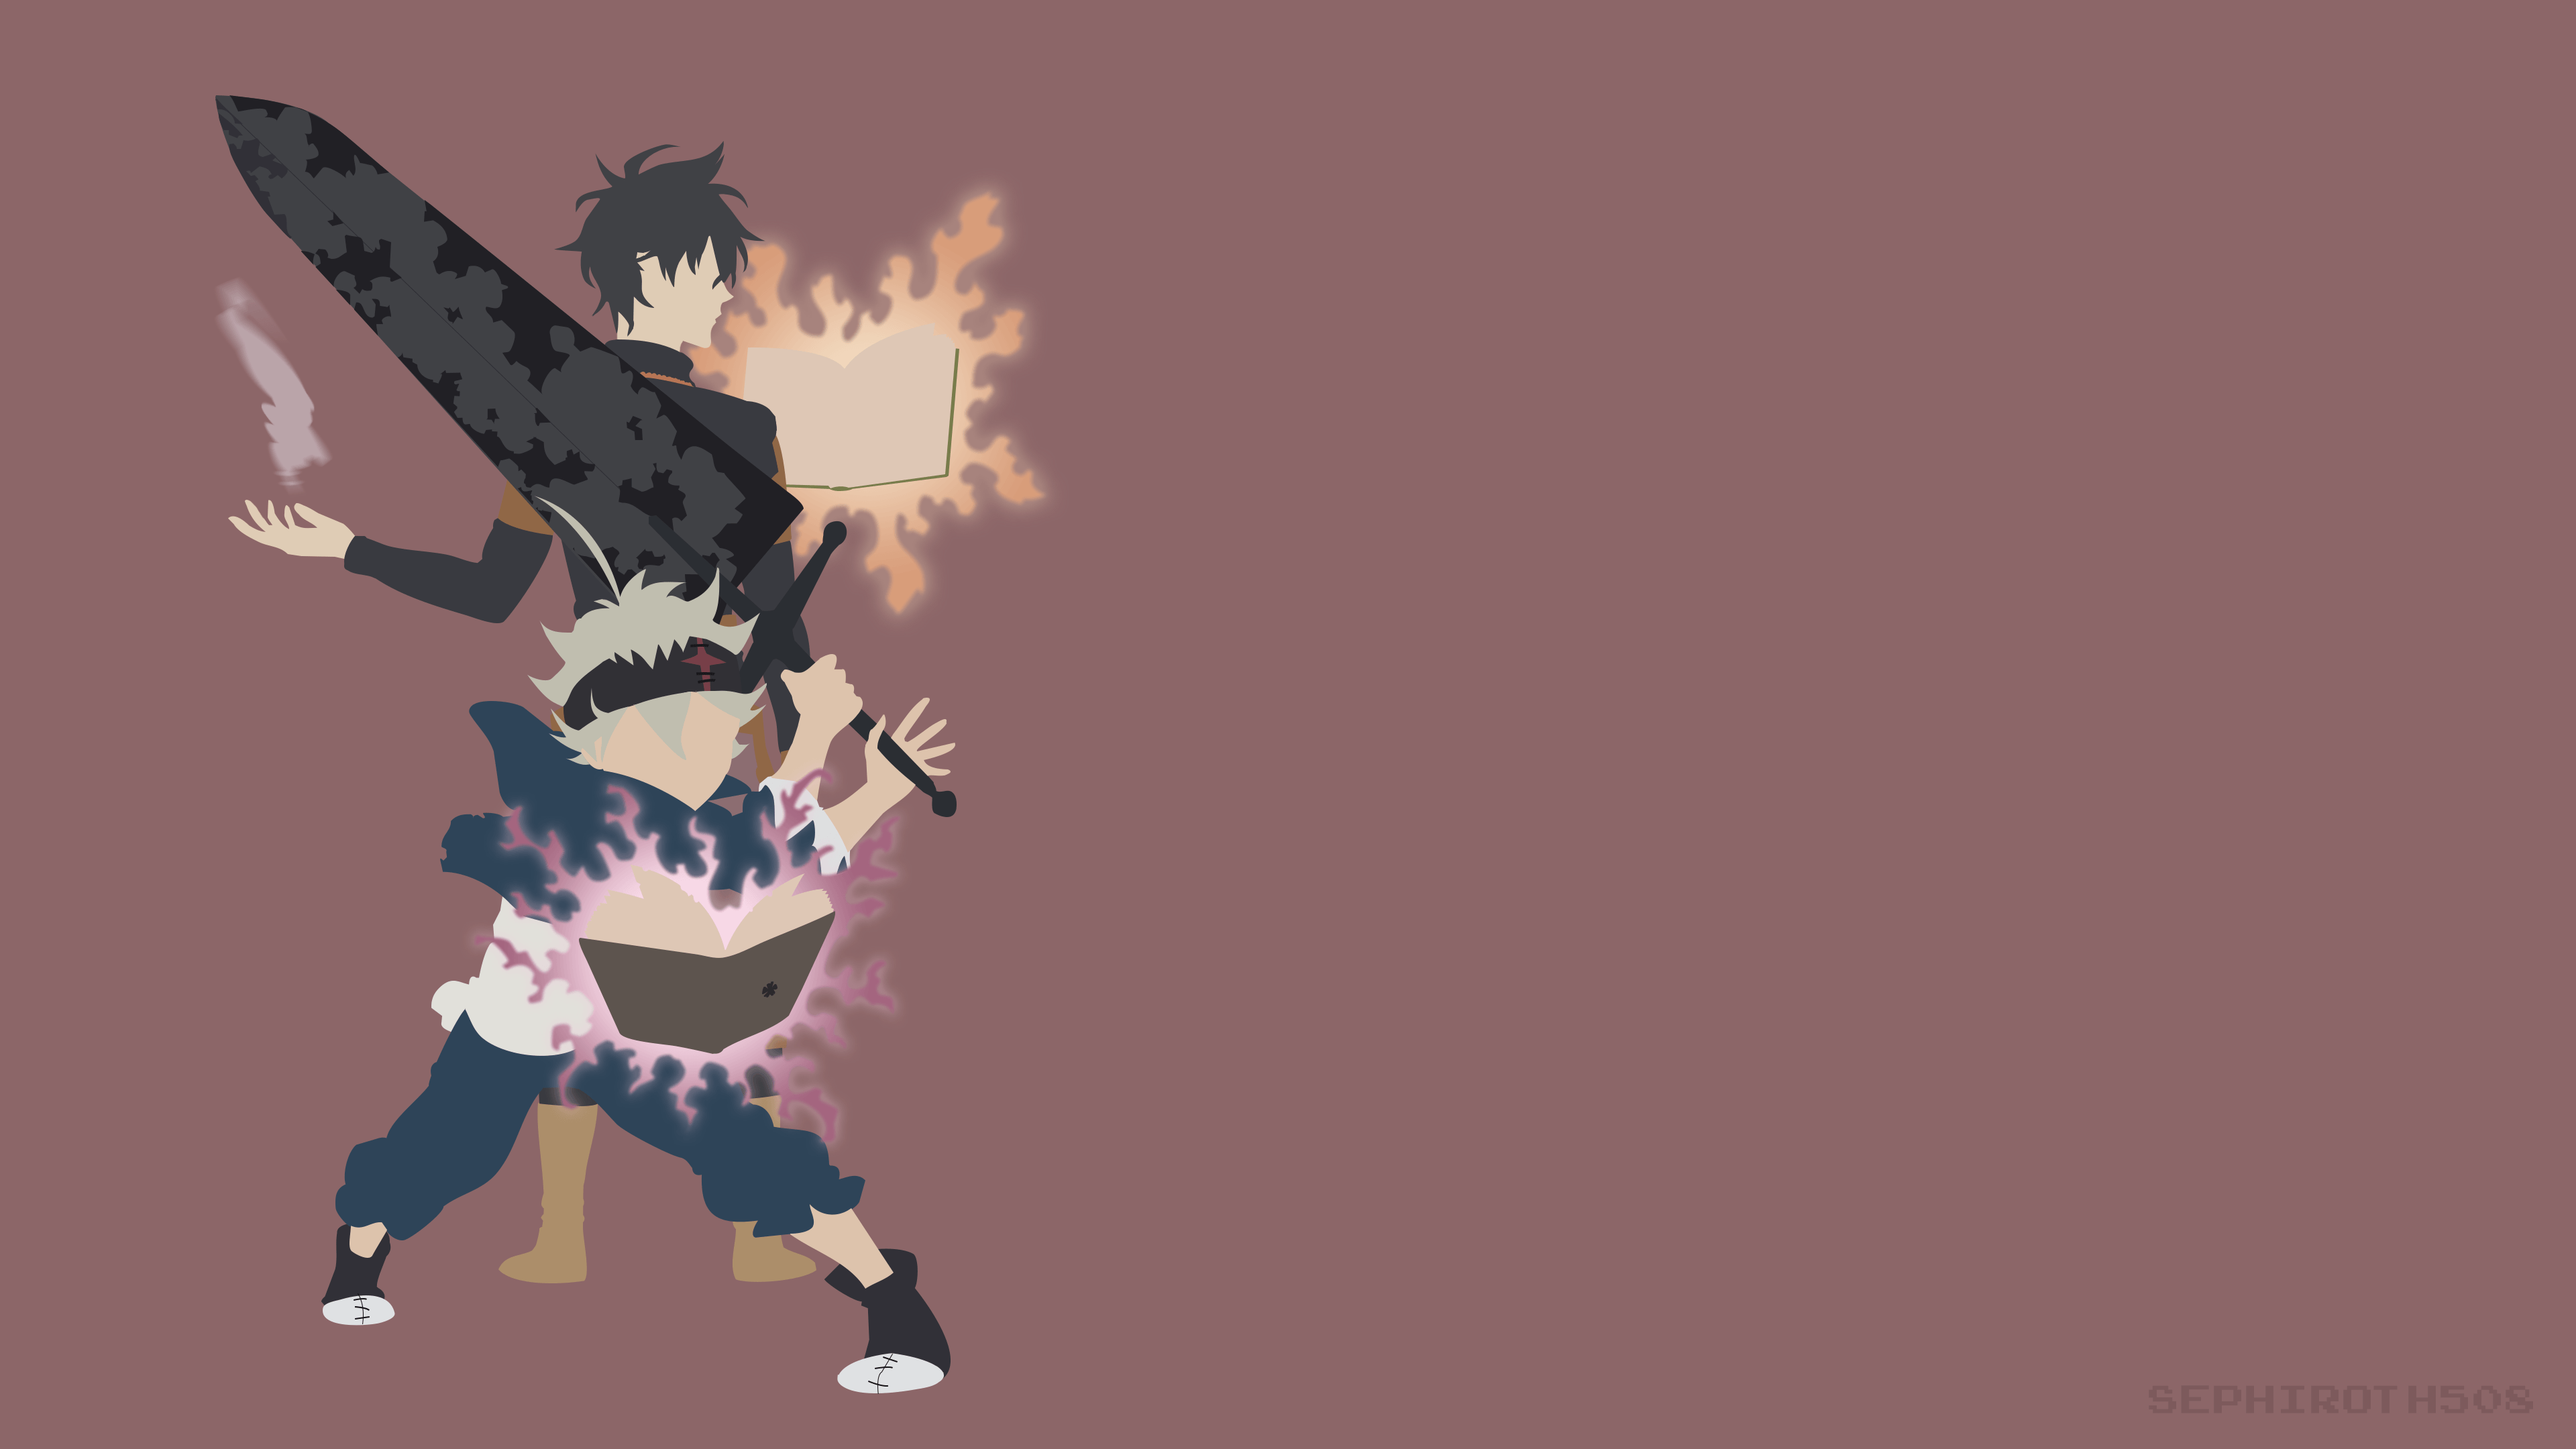 Black Clover 4k Wallpapers Top Free Black Clover 4k Backgrounds Wallpaperaccess